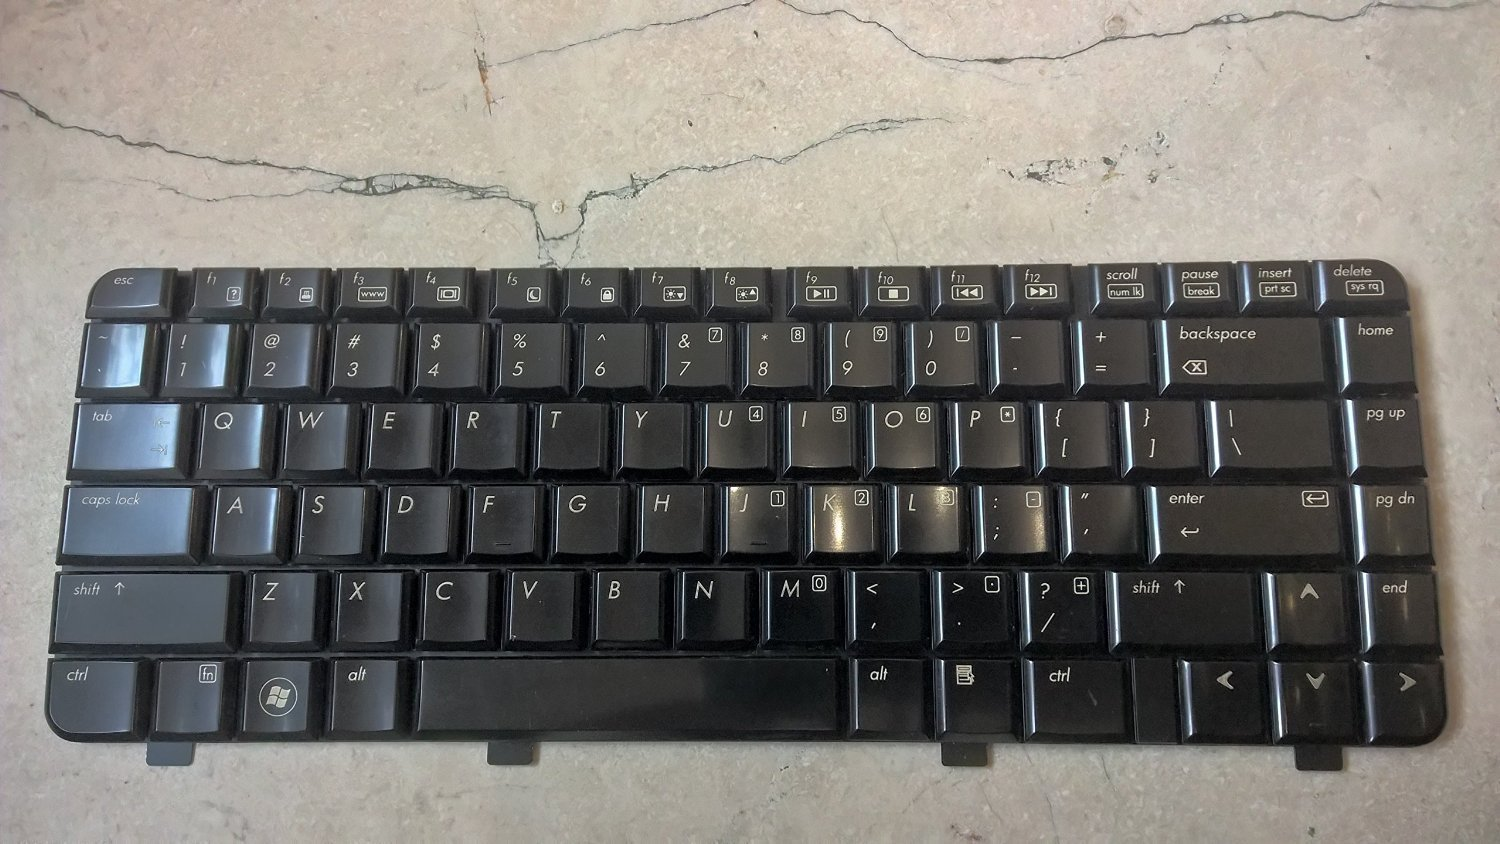 Generic Keyboard For HP Pavilion DV4 DV4-1000 DV4-1100 DV4-1200 DV4-1300 DV4-1400 NSK-HFB01 9J.N2G82.B01 PK1303VAB00 Black US Layout